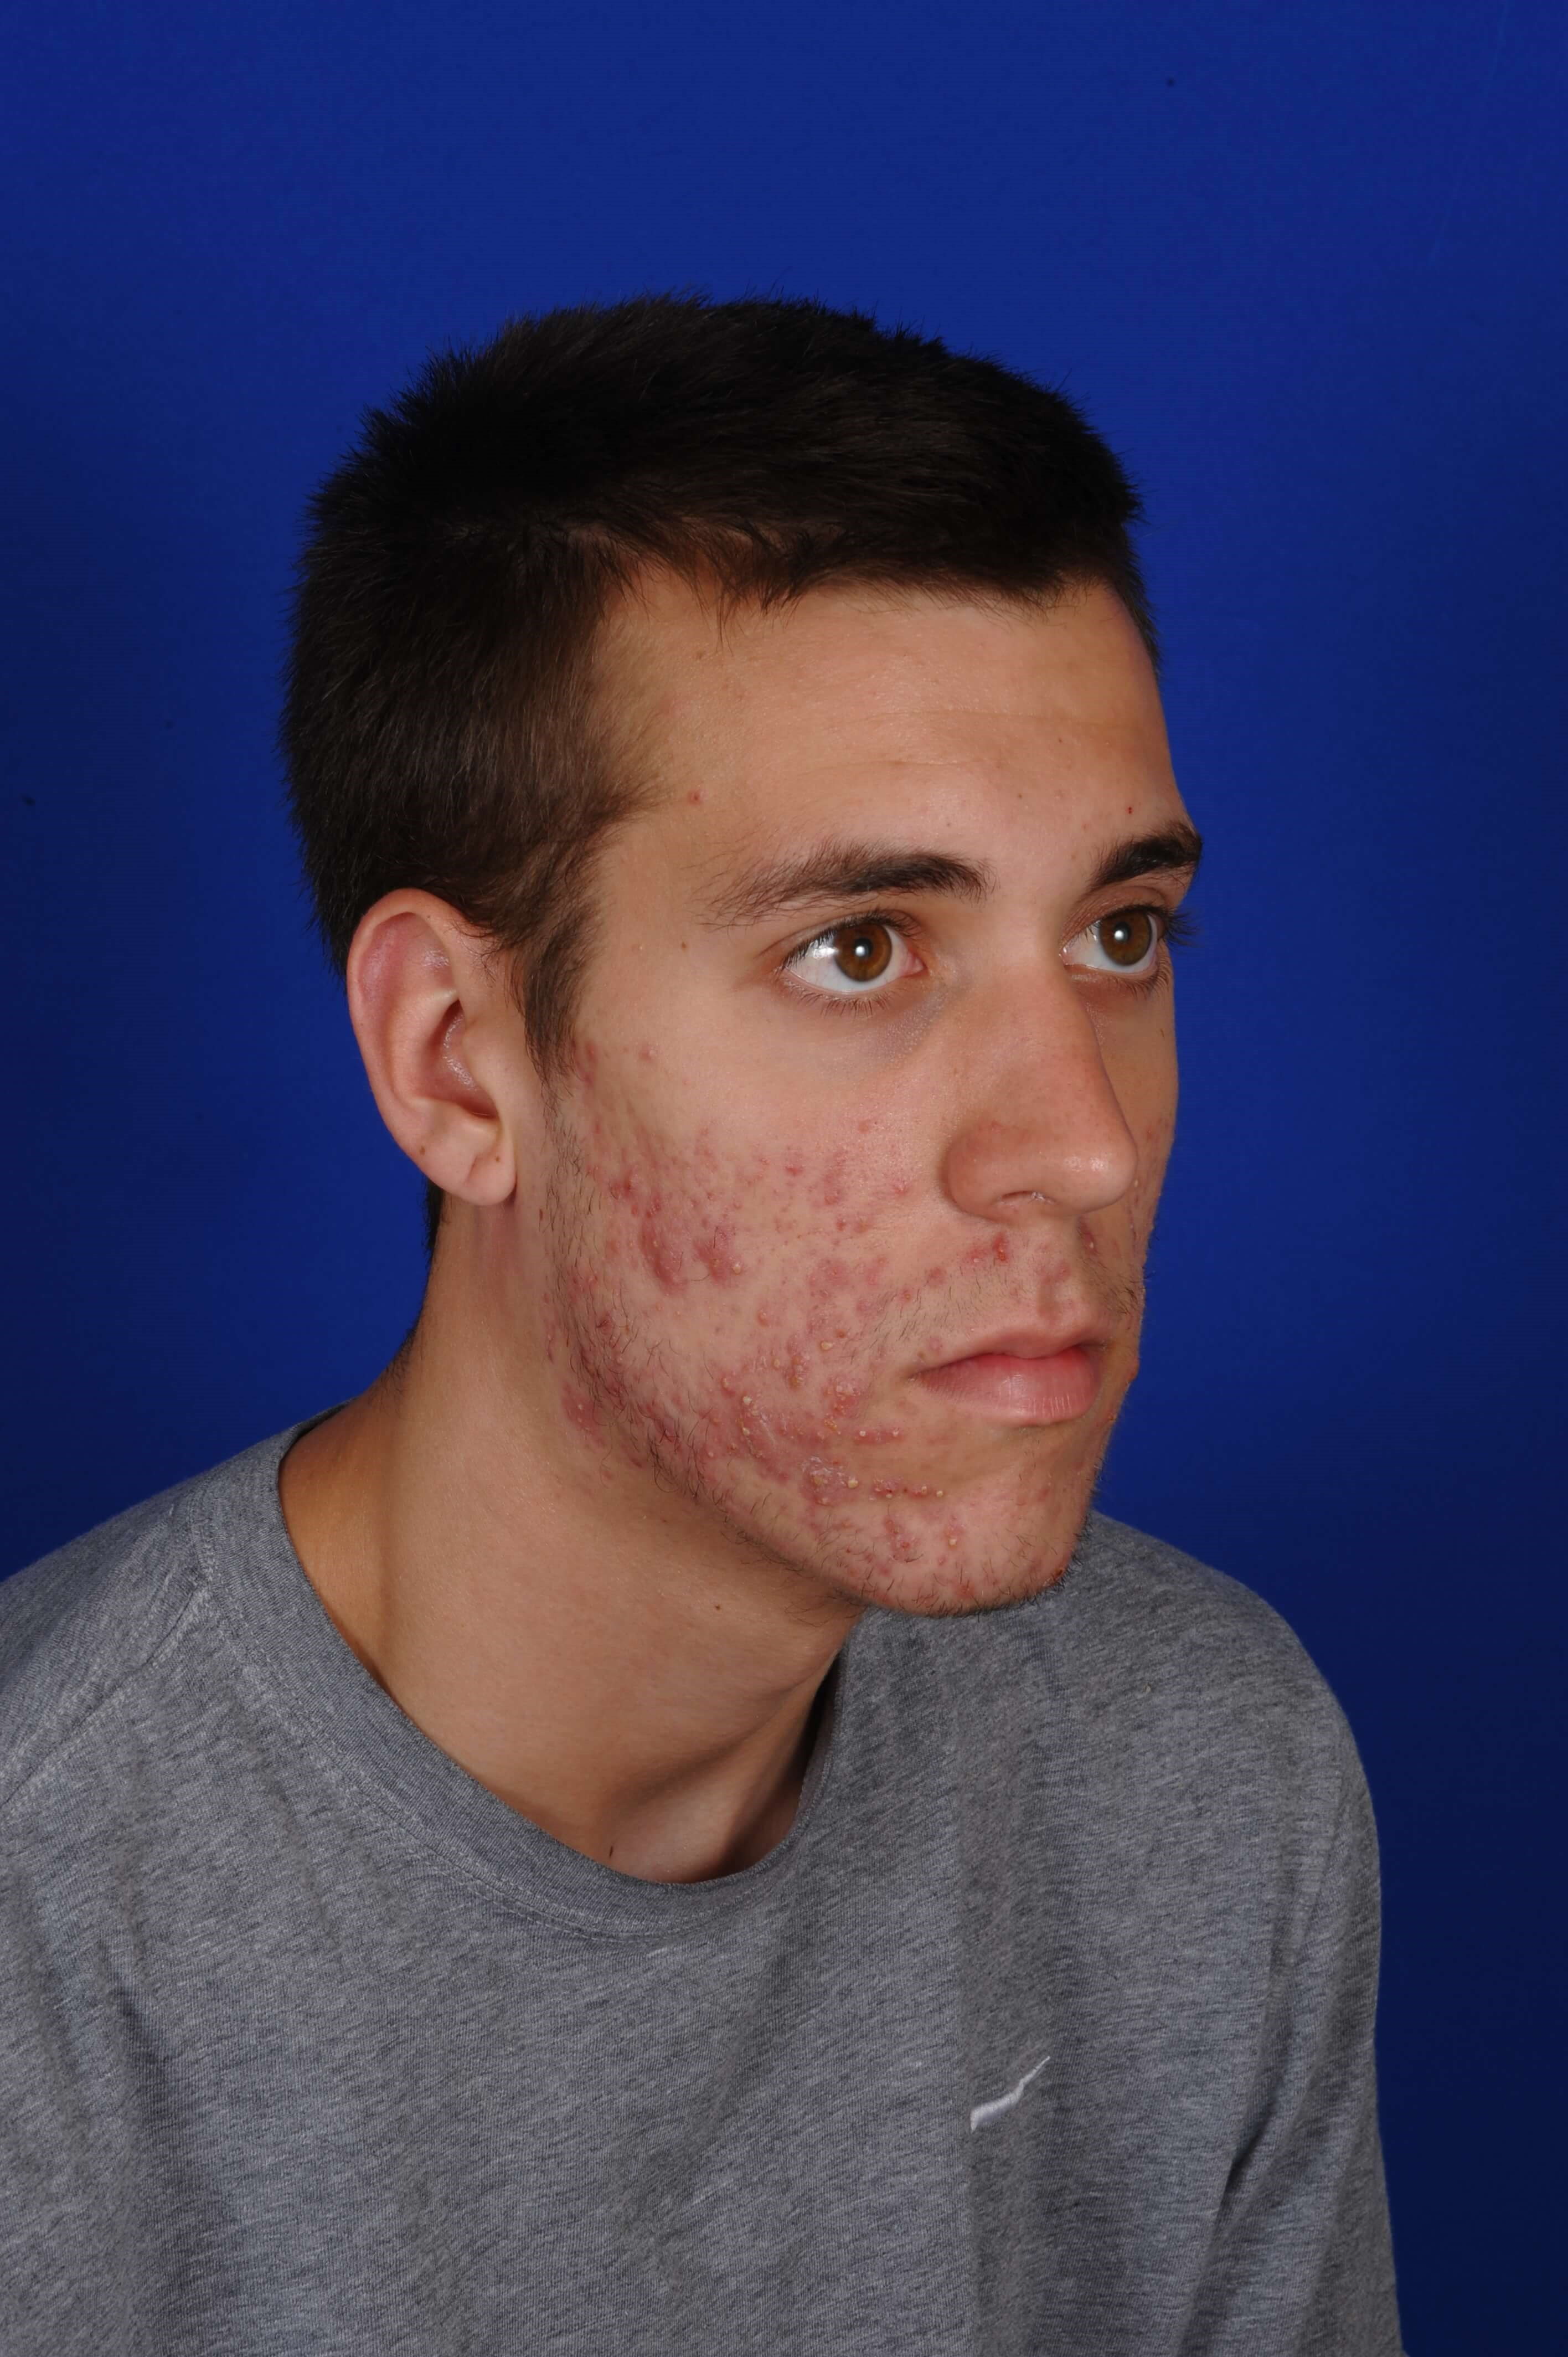 20 Year Old Male with Acne Before